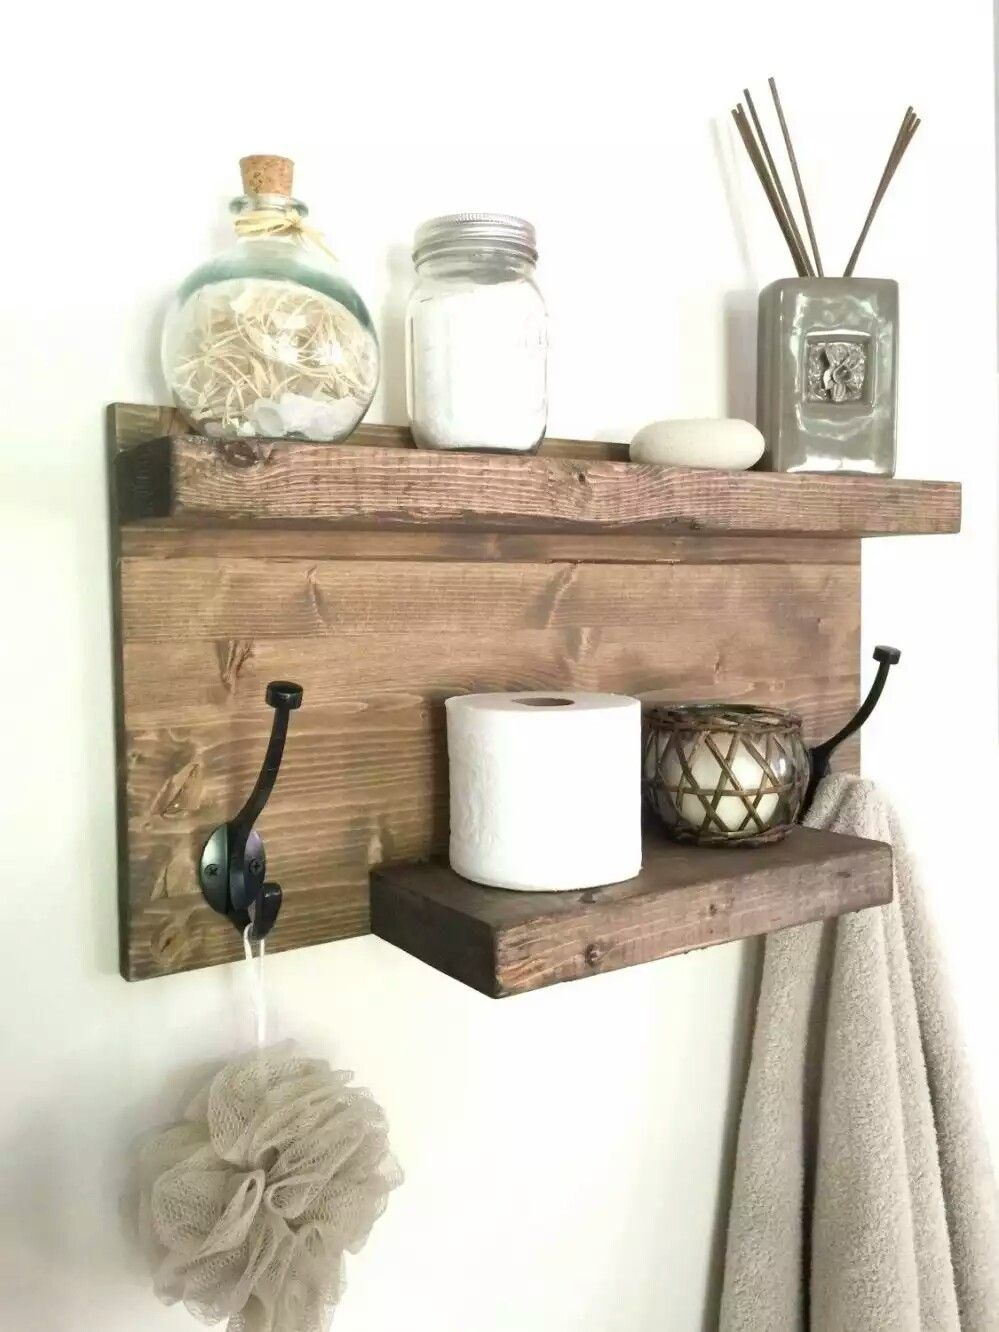 Pin By Brittany Hills On Storage Ideas Bathroom Design Decor Rustic Bathroom Shelves Rustic Towels